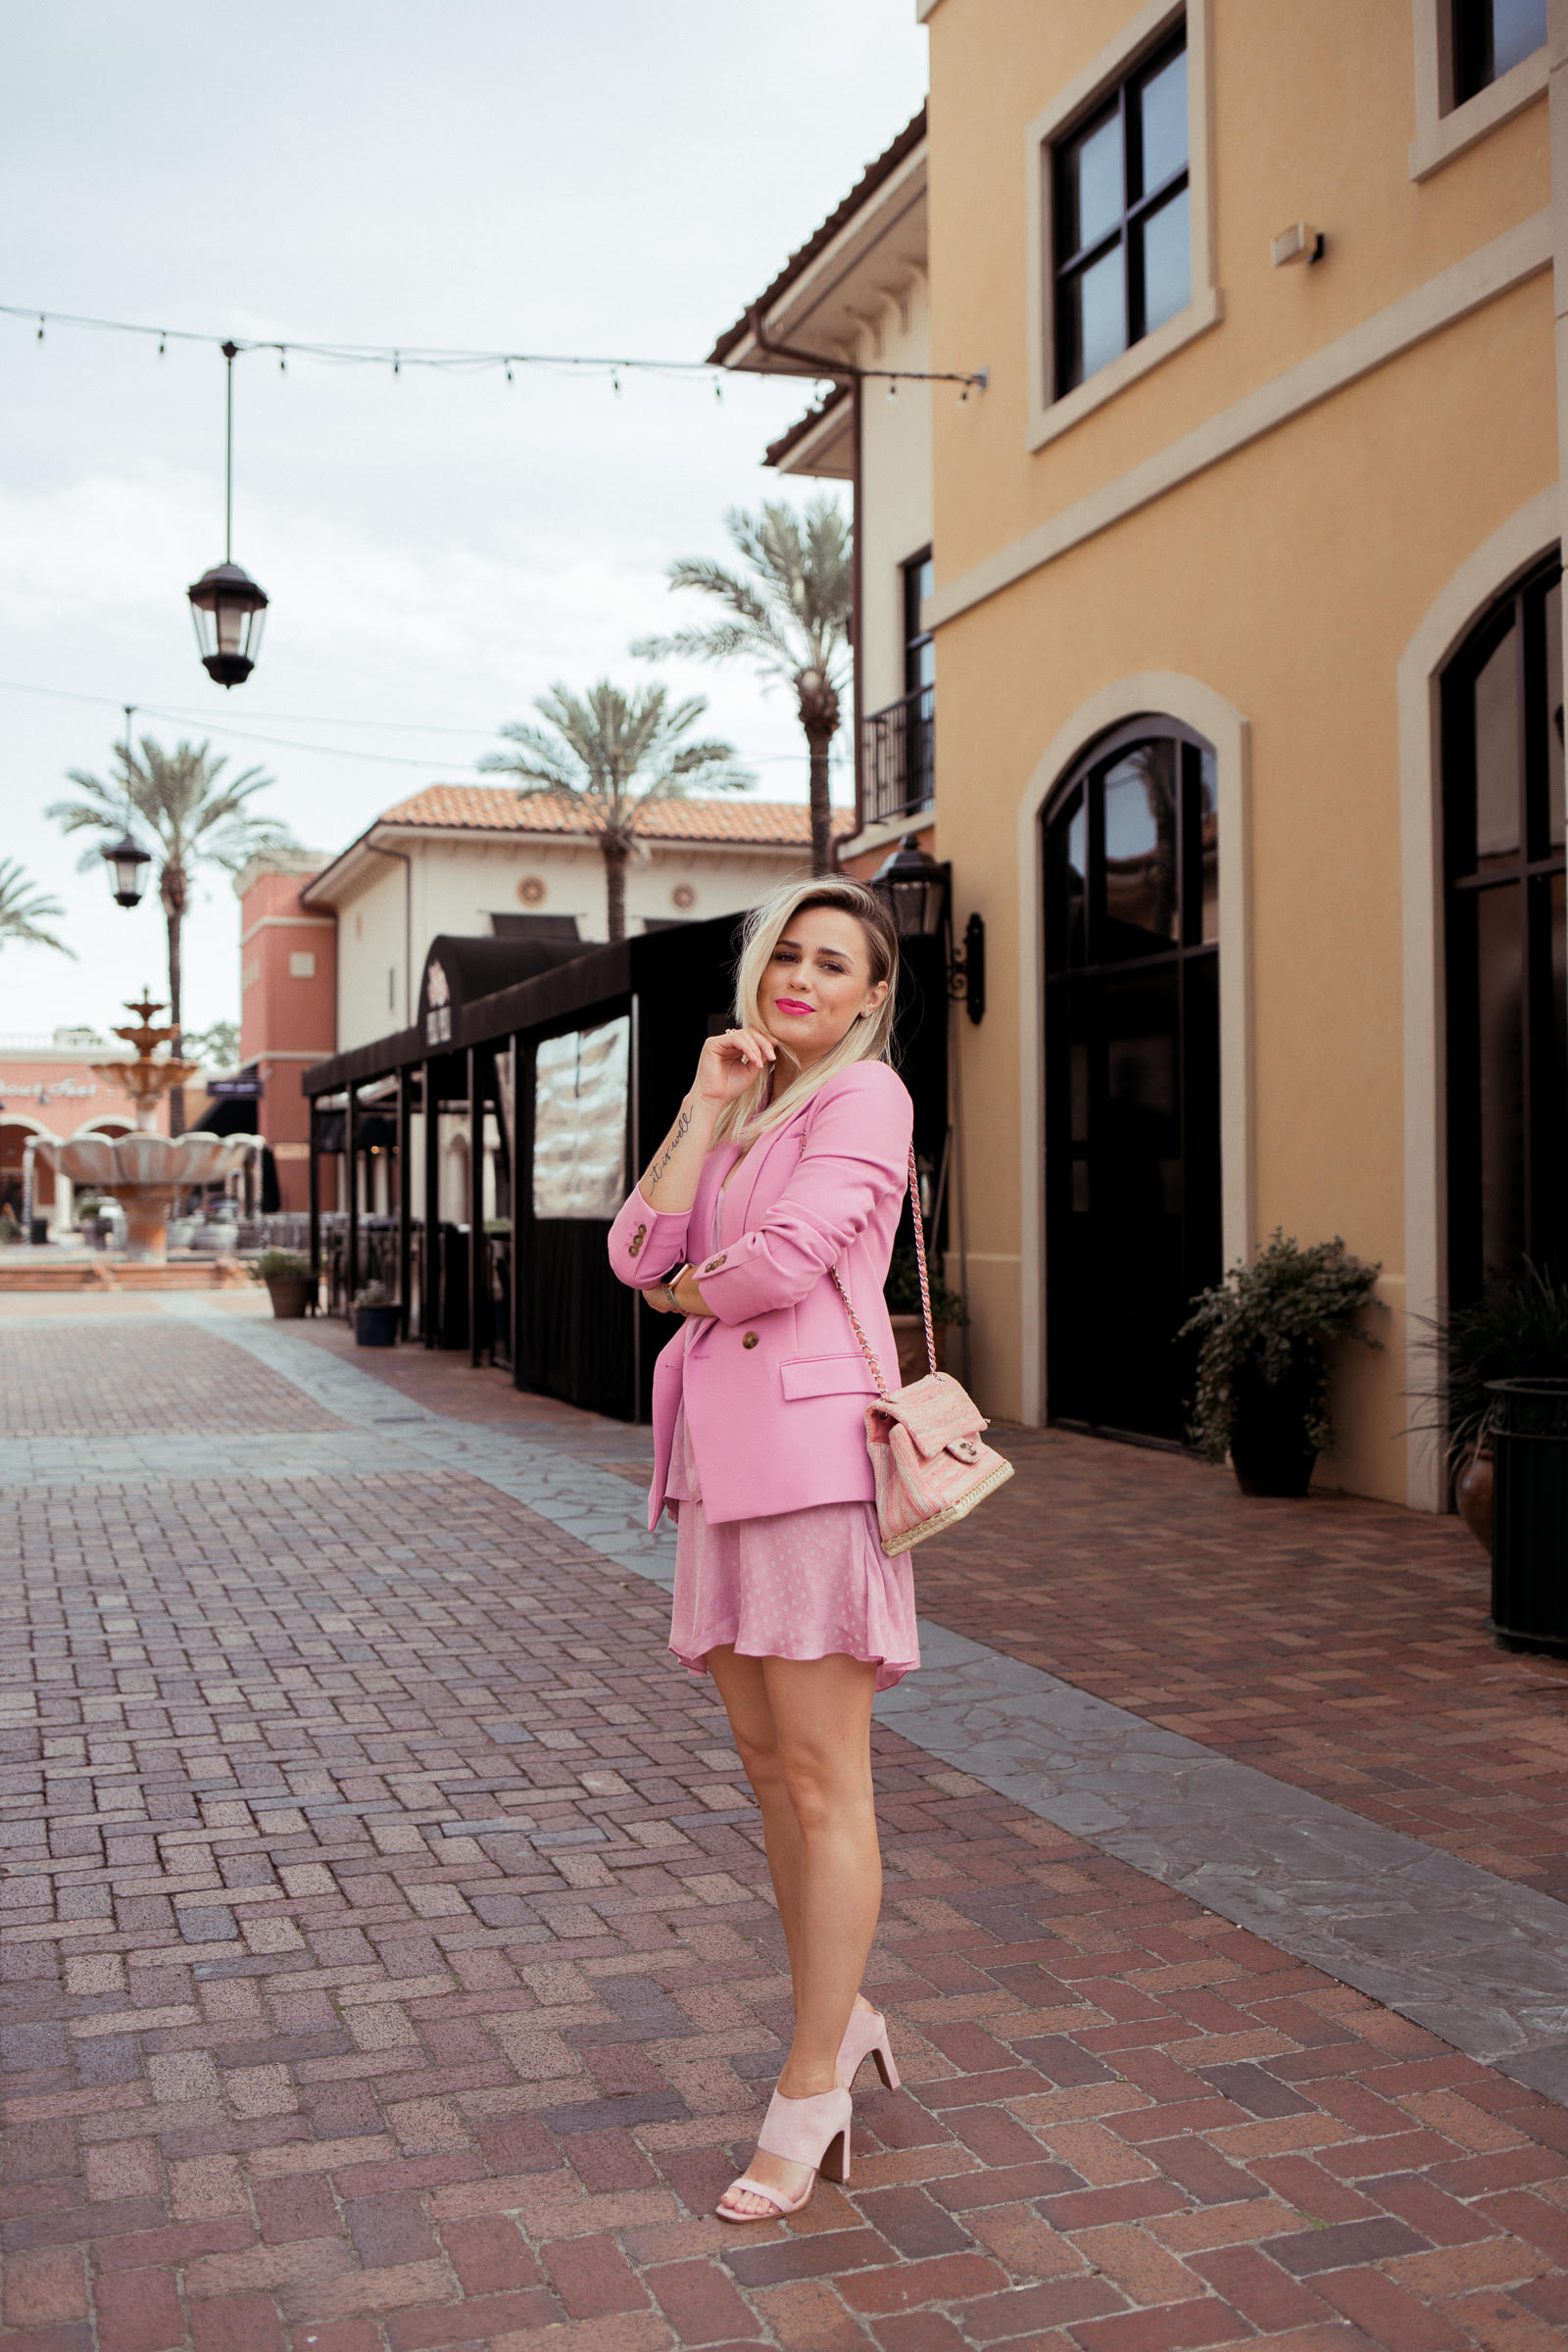 Houston fashion blogger Elly Brown wears a monochromatic pink outfit for spring